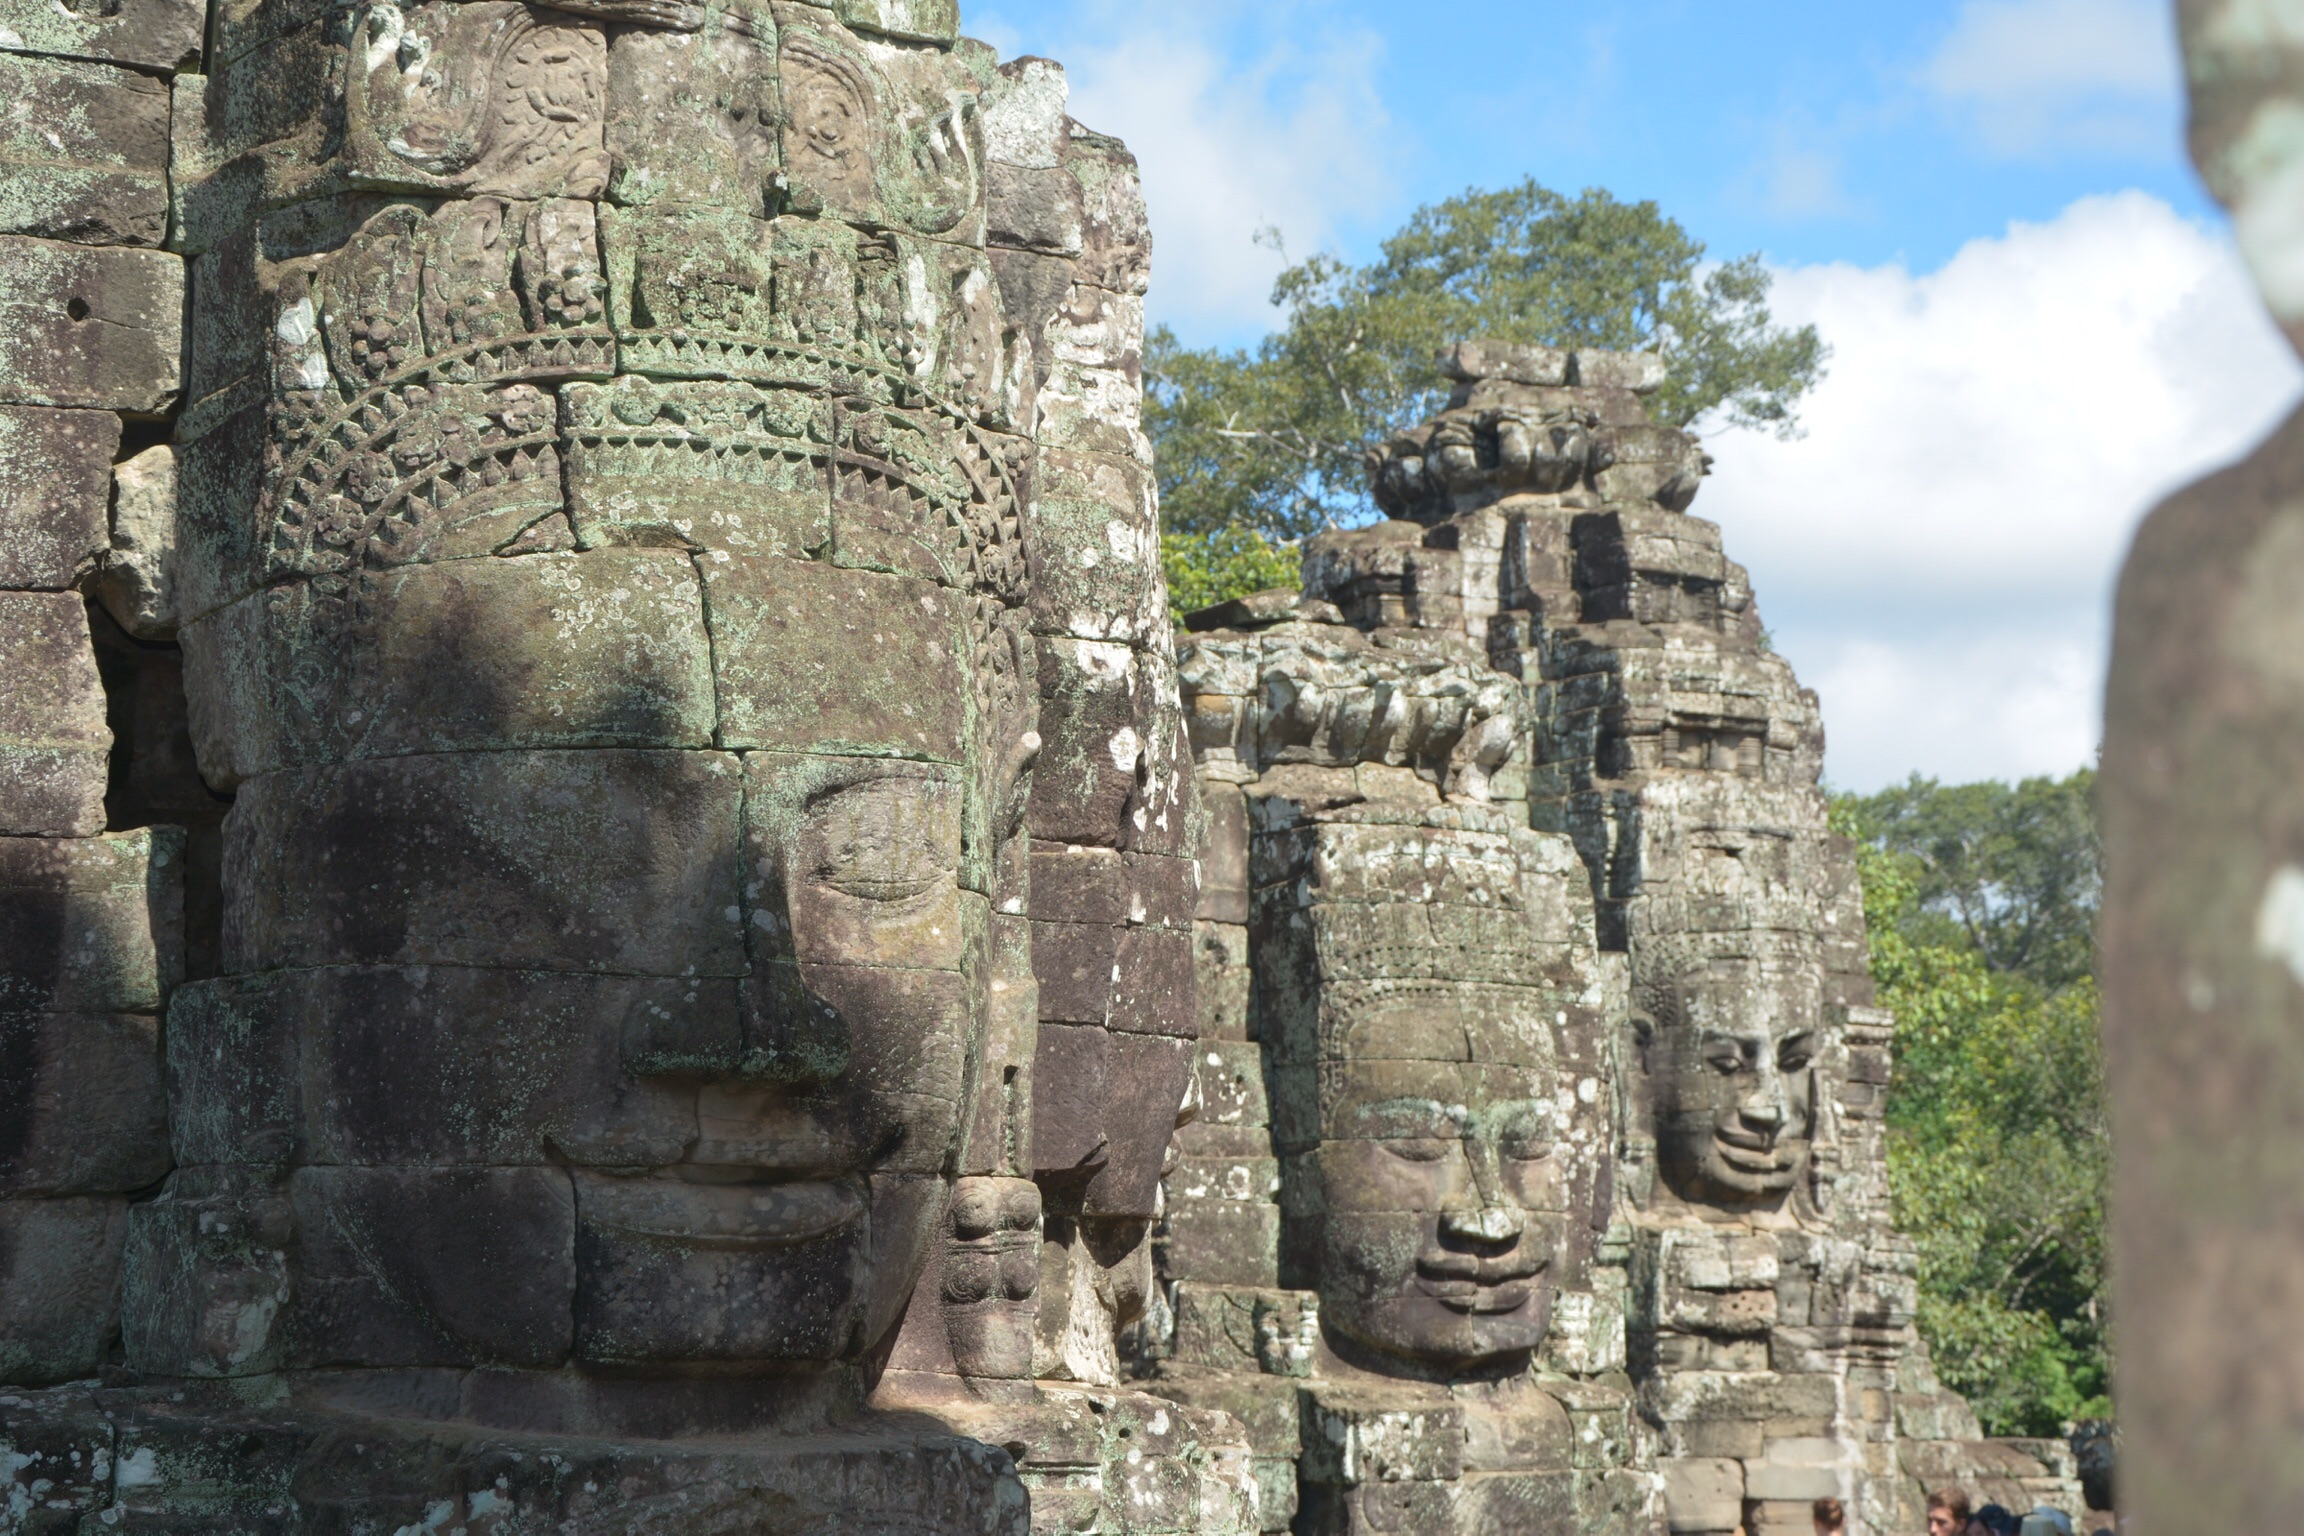 Just 3 of the over 200 faces at Bayon Temple.